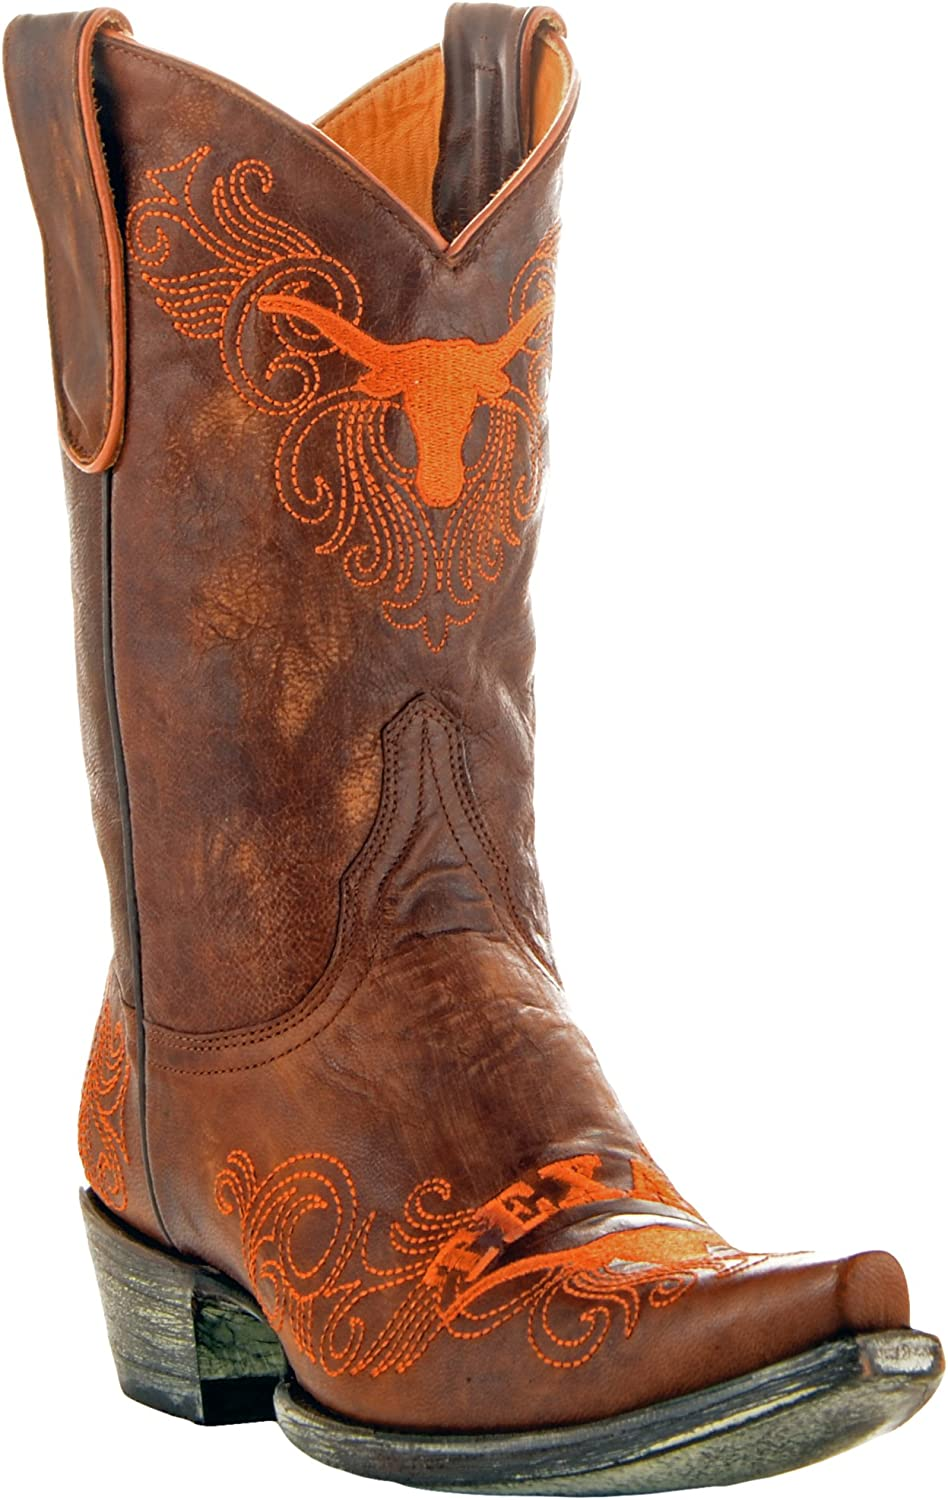 NCAA Texas Longhorns Women's 10Inch Gameday Boots